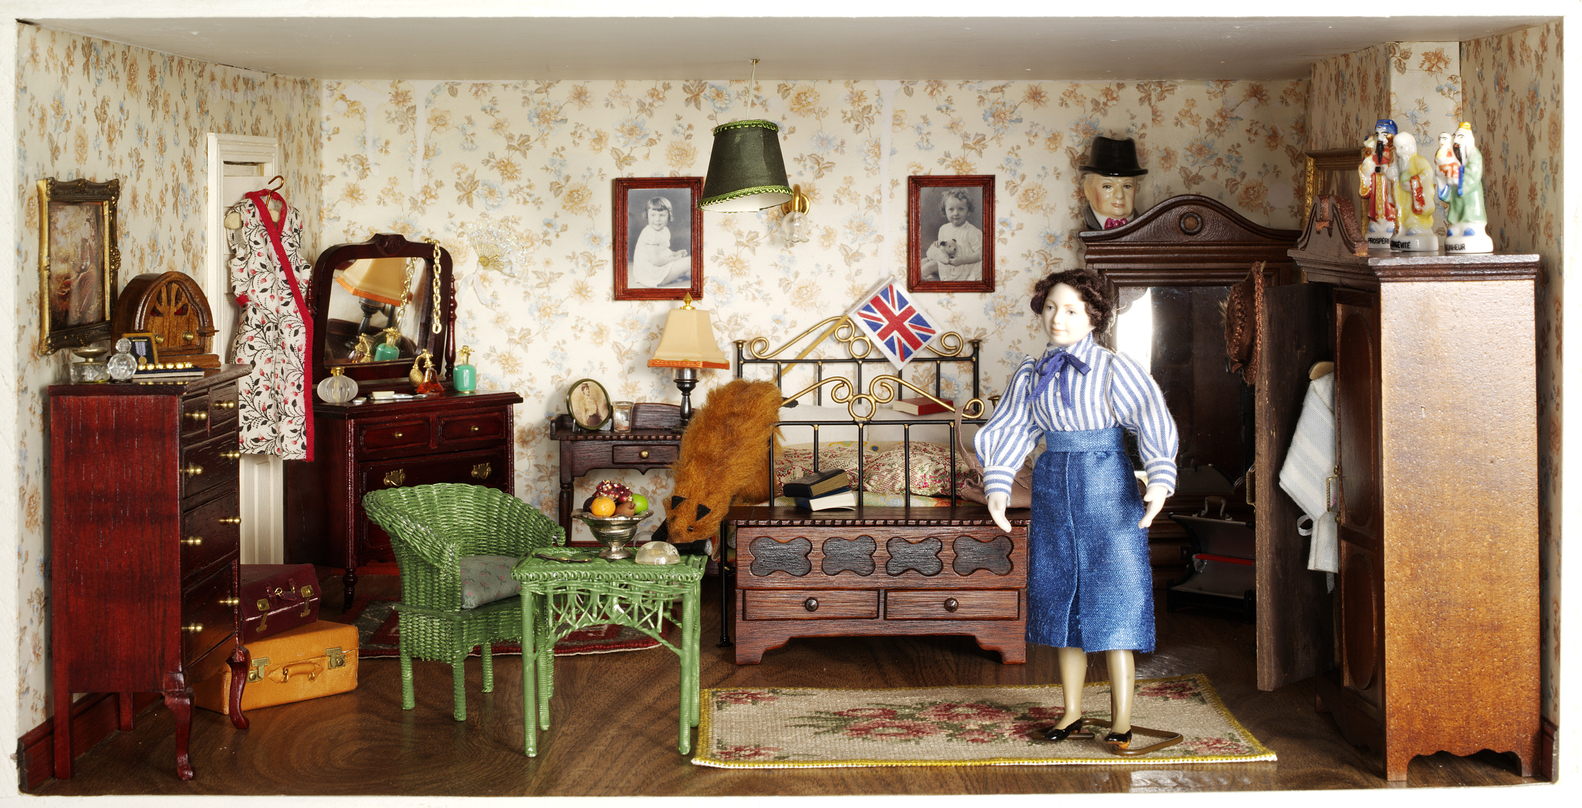 gallery of 12 dollhouses that trace 300 years of british domesticity Tin Doll Houses 12 dollhouses that trace 300 years of british domesticity hopkinson house set in 1940s